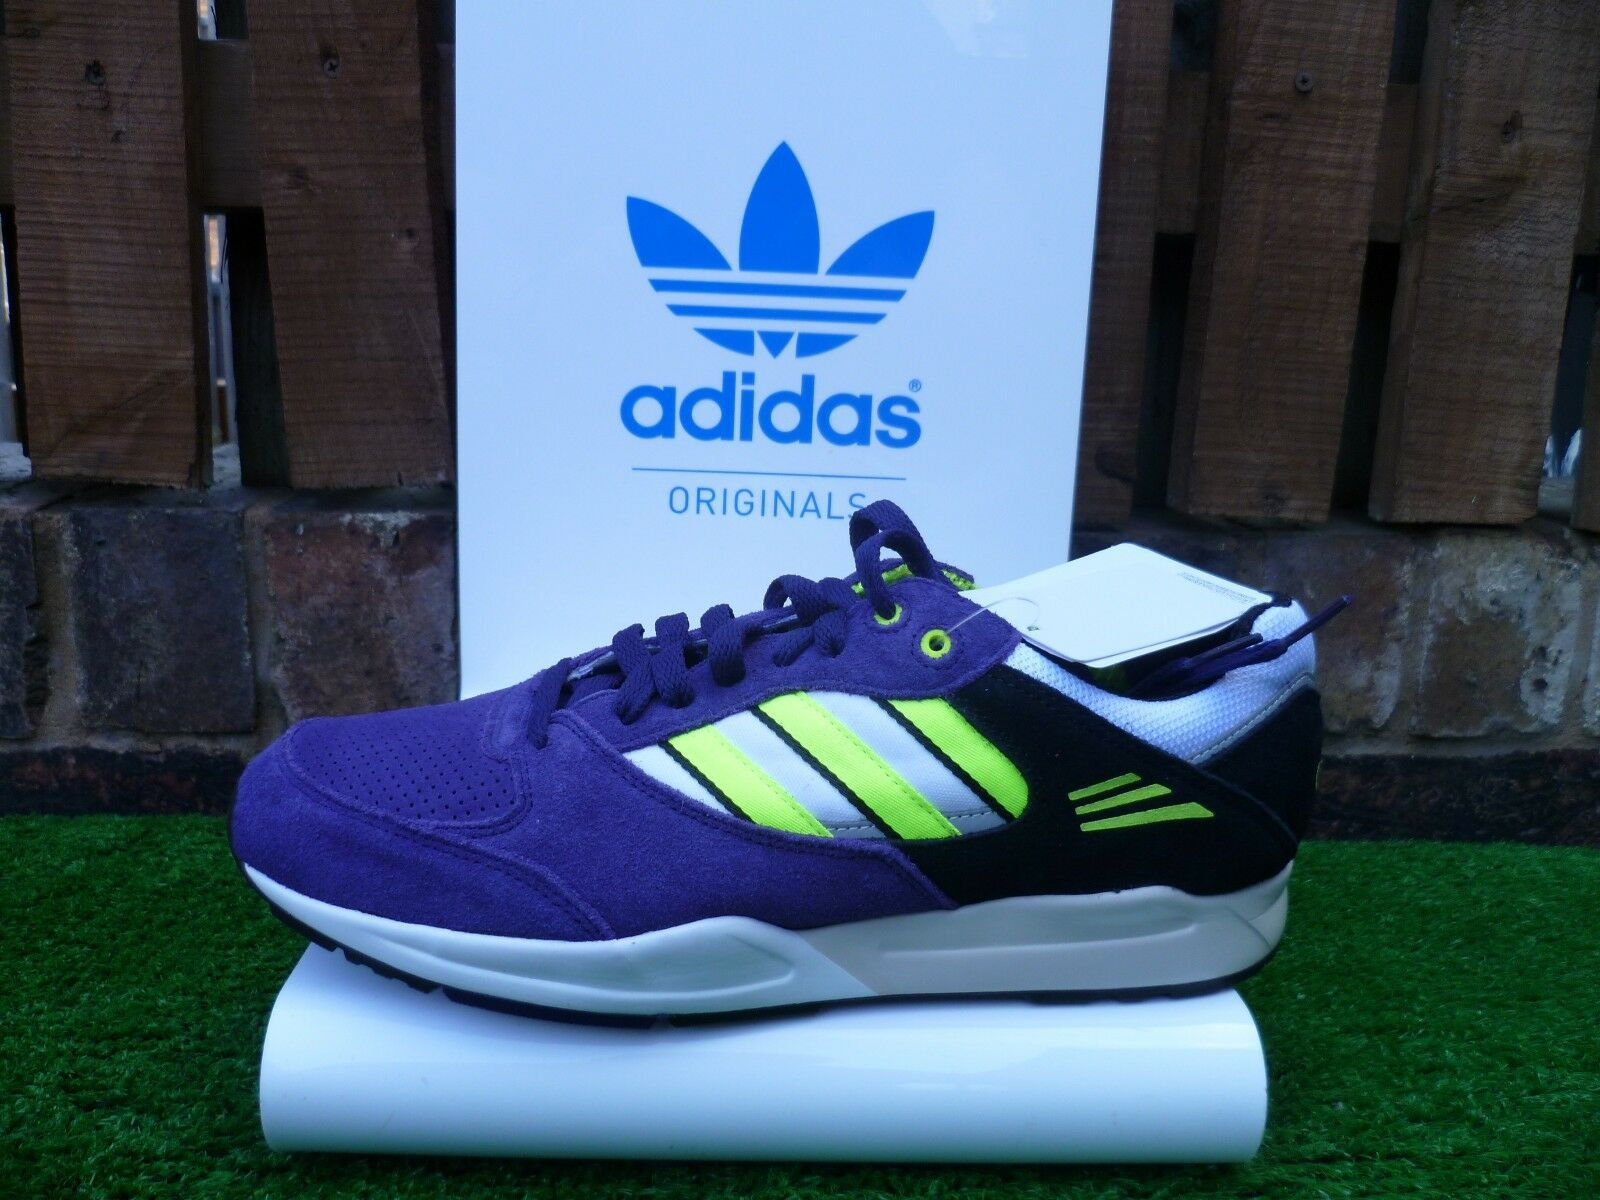 ADIDAS TECH SUPER 80s Casuals UK9 Nuevo Y En Caja ZX 2012 TORSION combinación de Colors RARA  mira